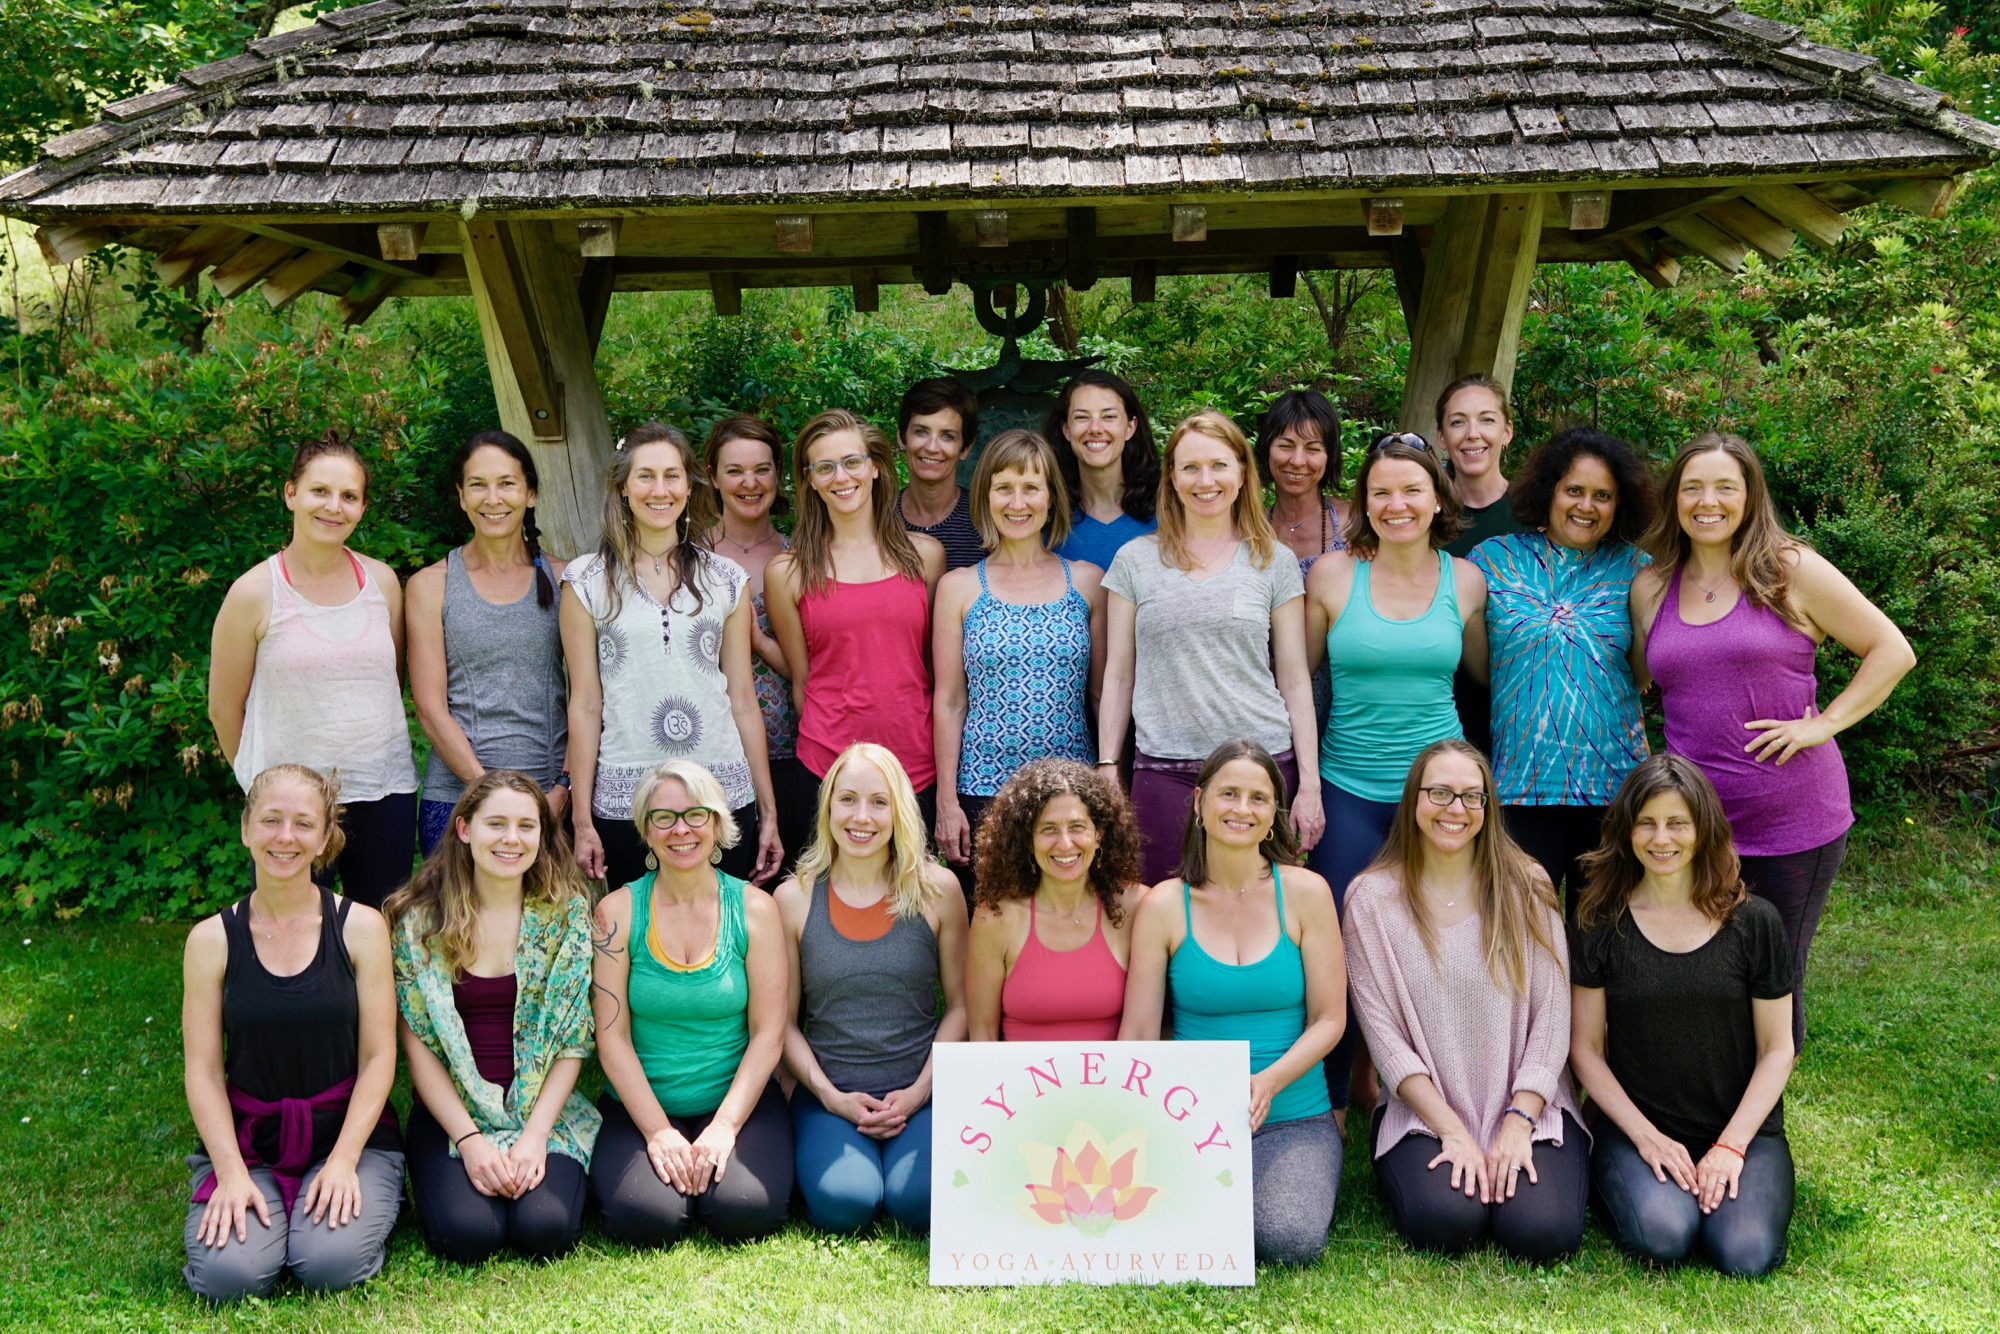 Synergy Yoga Yoga Yoga Teacher Training Yoga Retreats And Workshops Seattle Washington